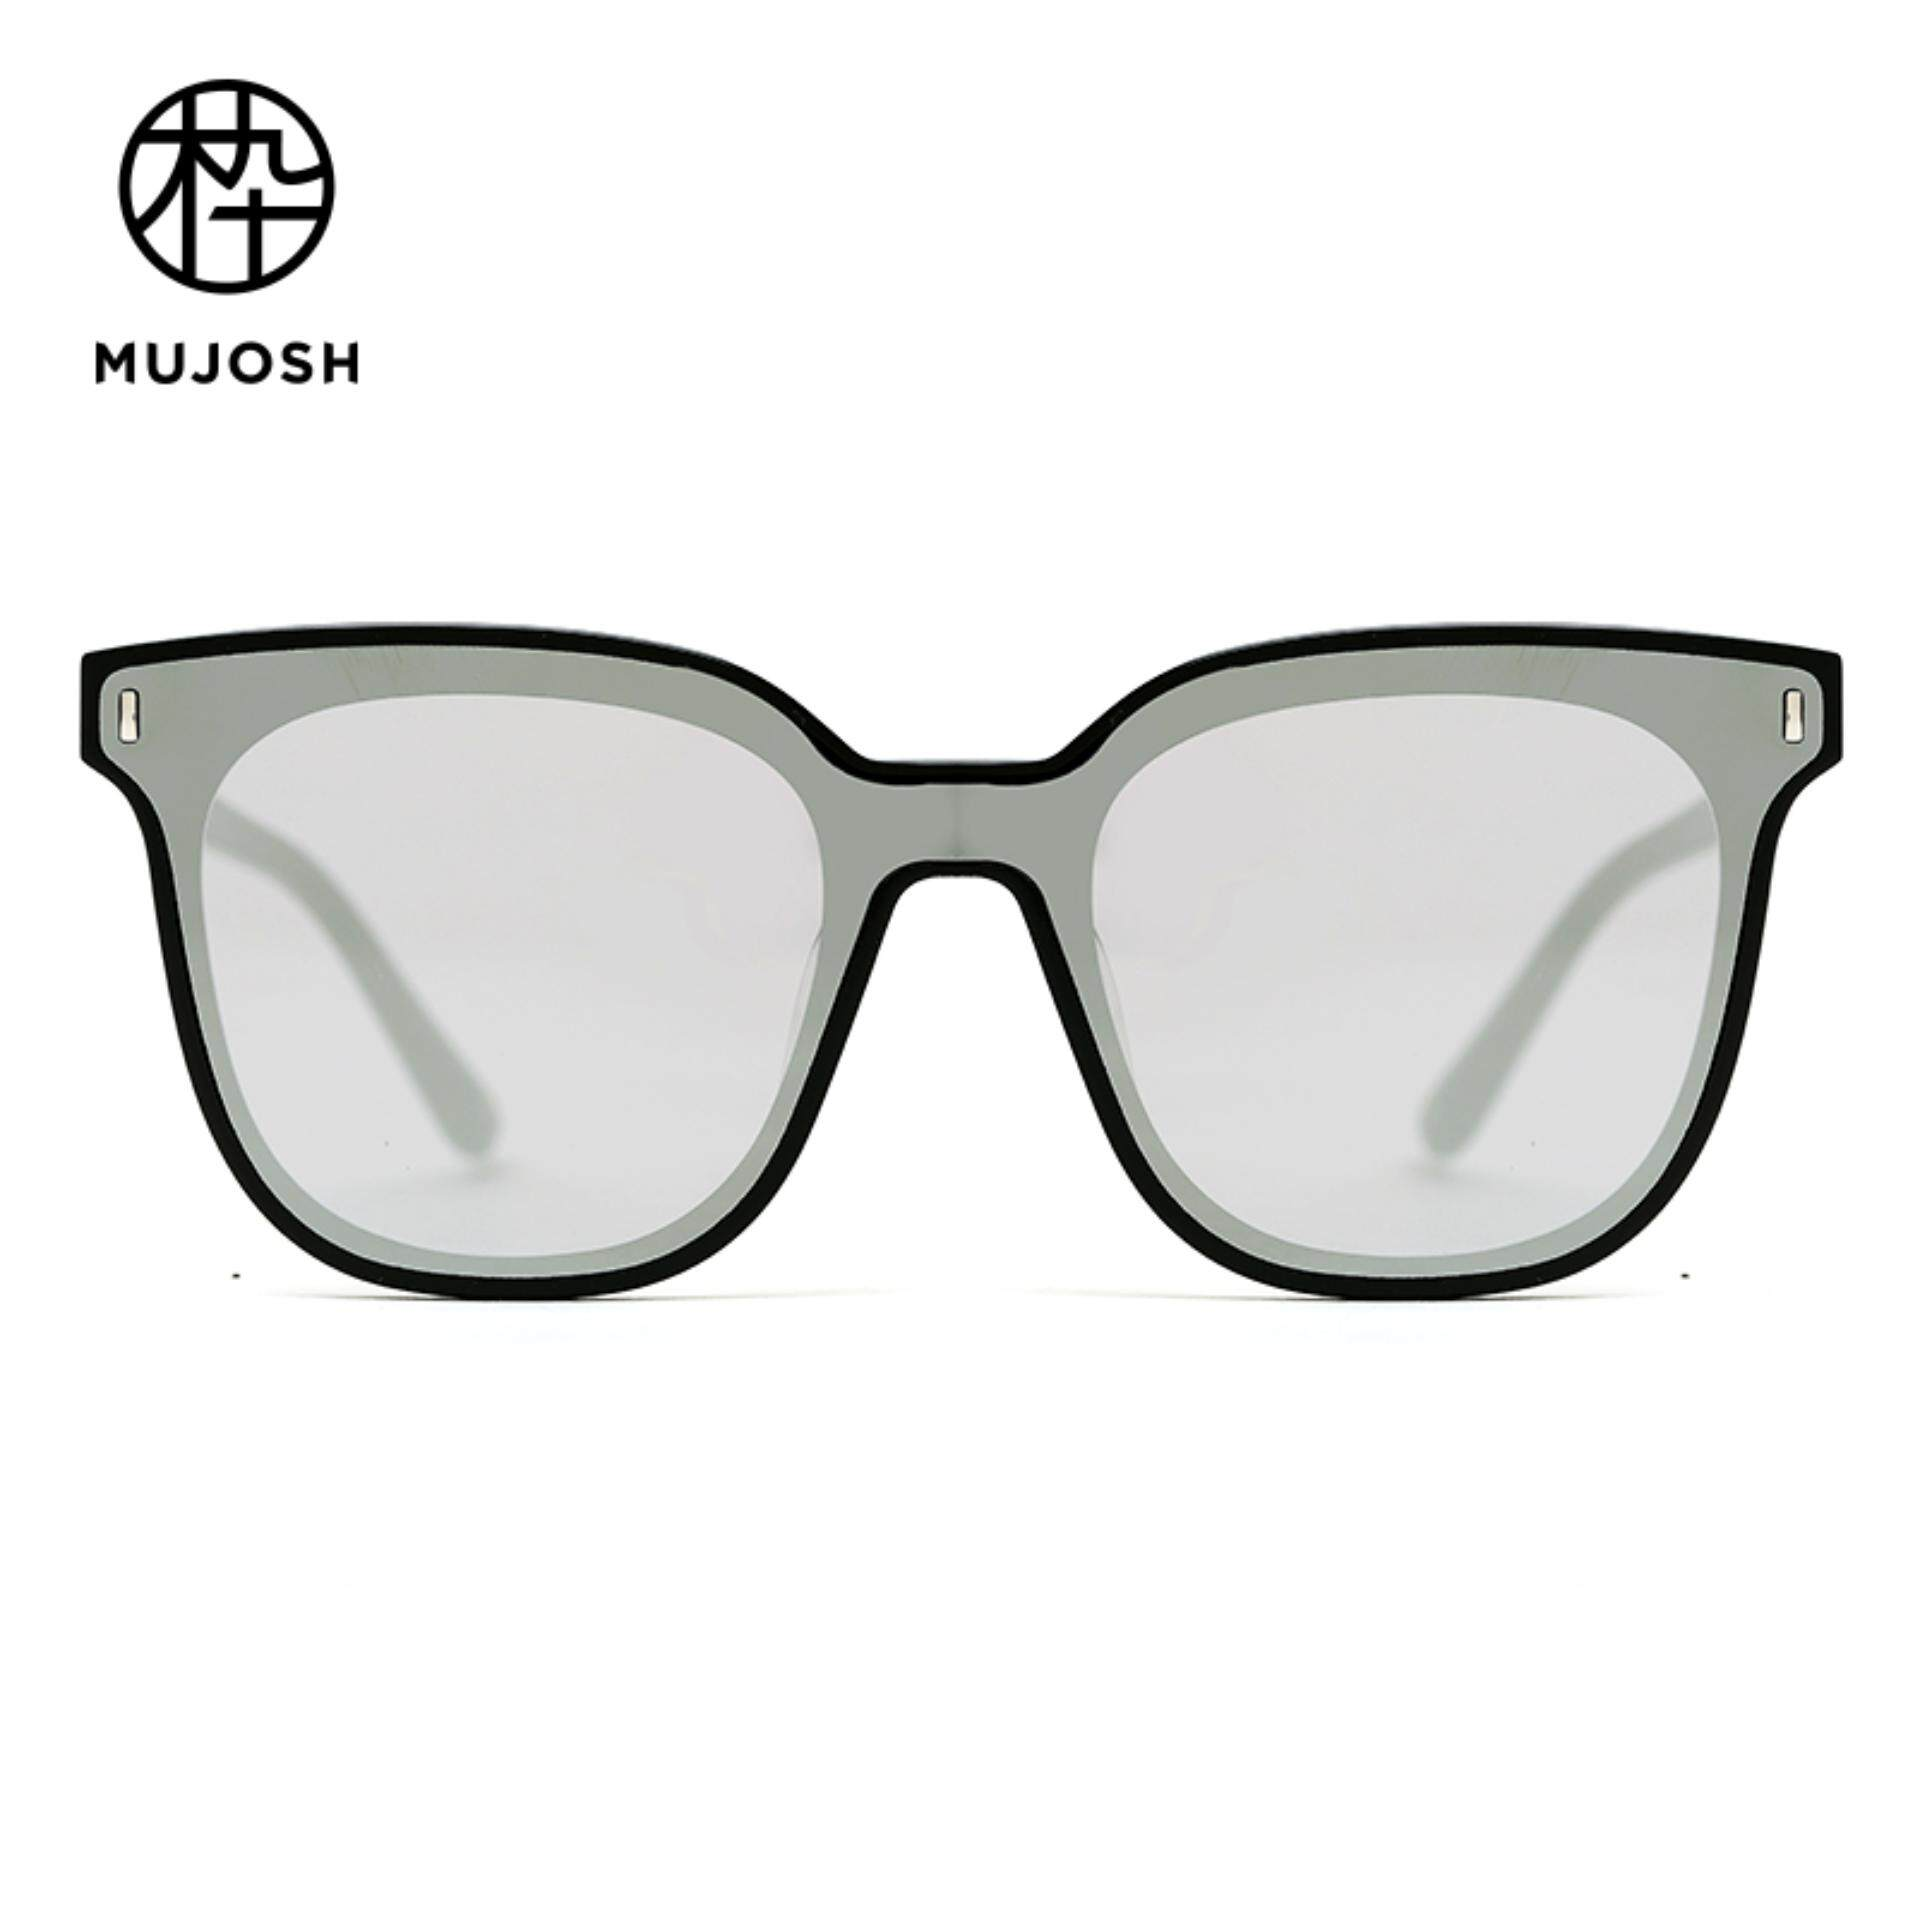 4d760ea46a MUJOSH Men Acetate Nylon TR90 Lens Square Shield Fashion Sunglasses  SM1840133C01